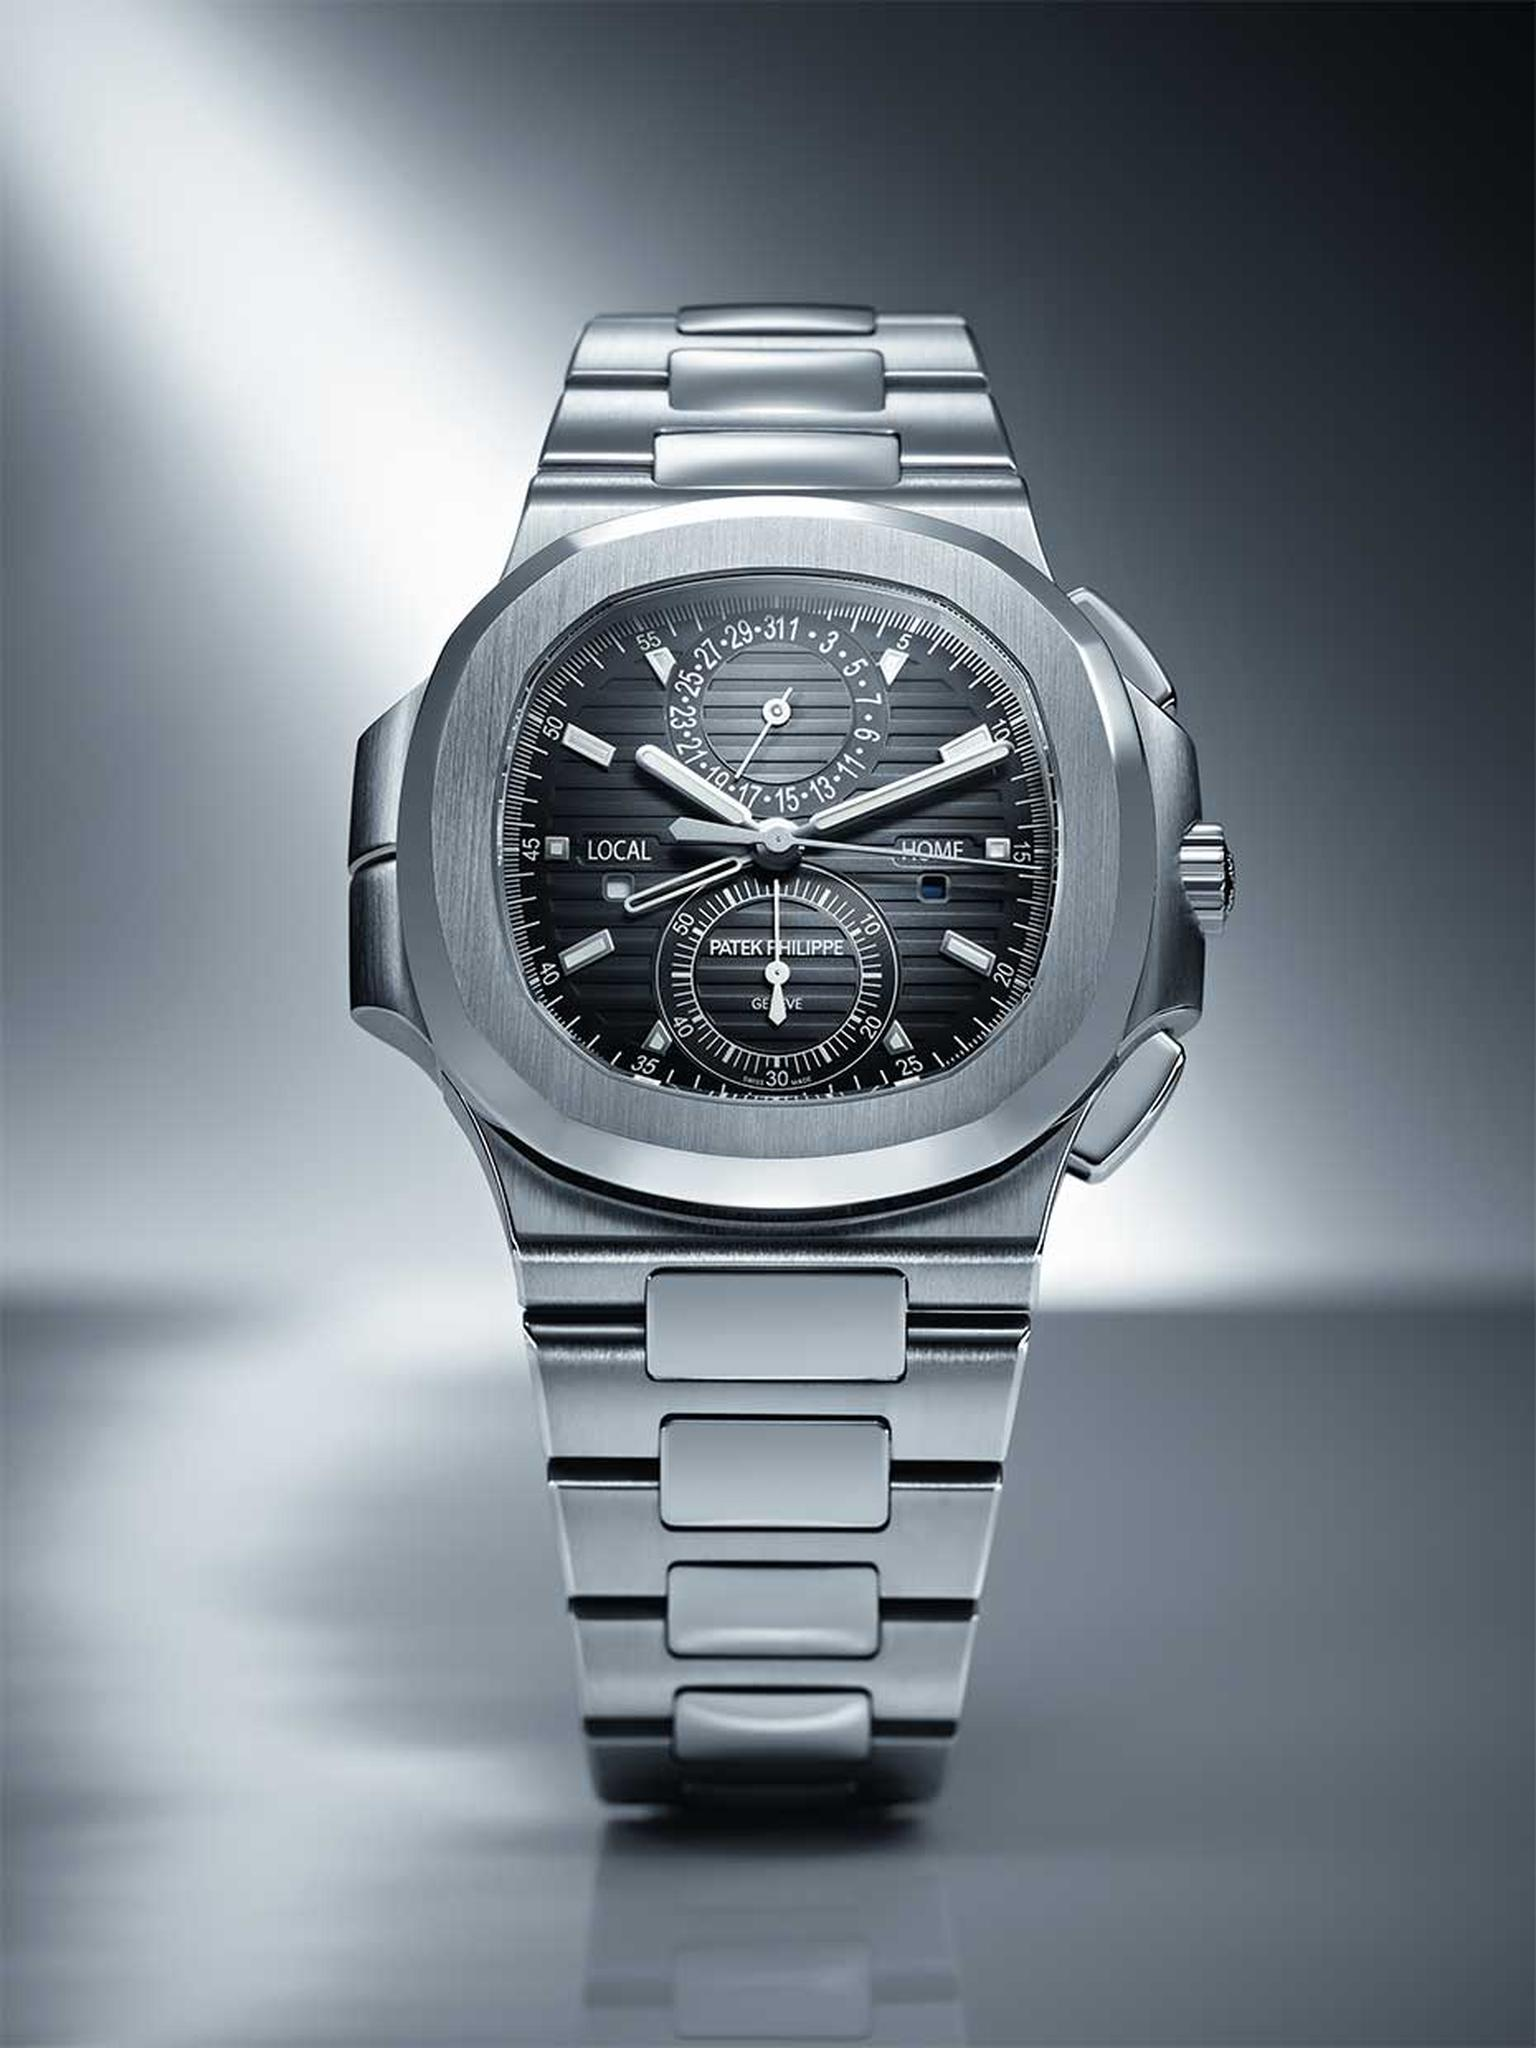 The Patek Philippe 5990 Nautilus Travel Time Chronograph watch features a pusher system for the second time zone, which has been carefully integrated on the left side of the case.